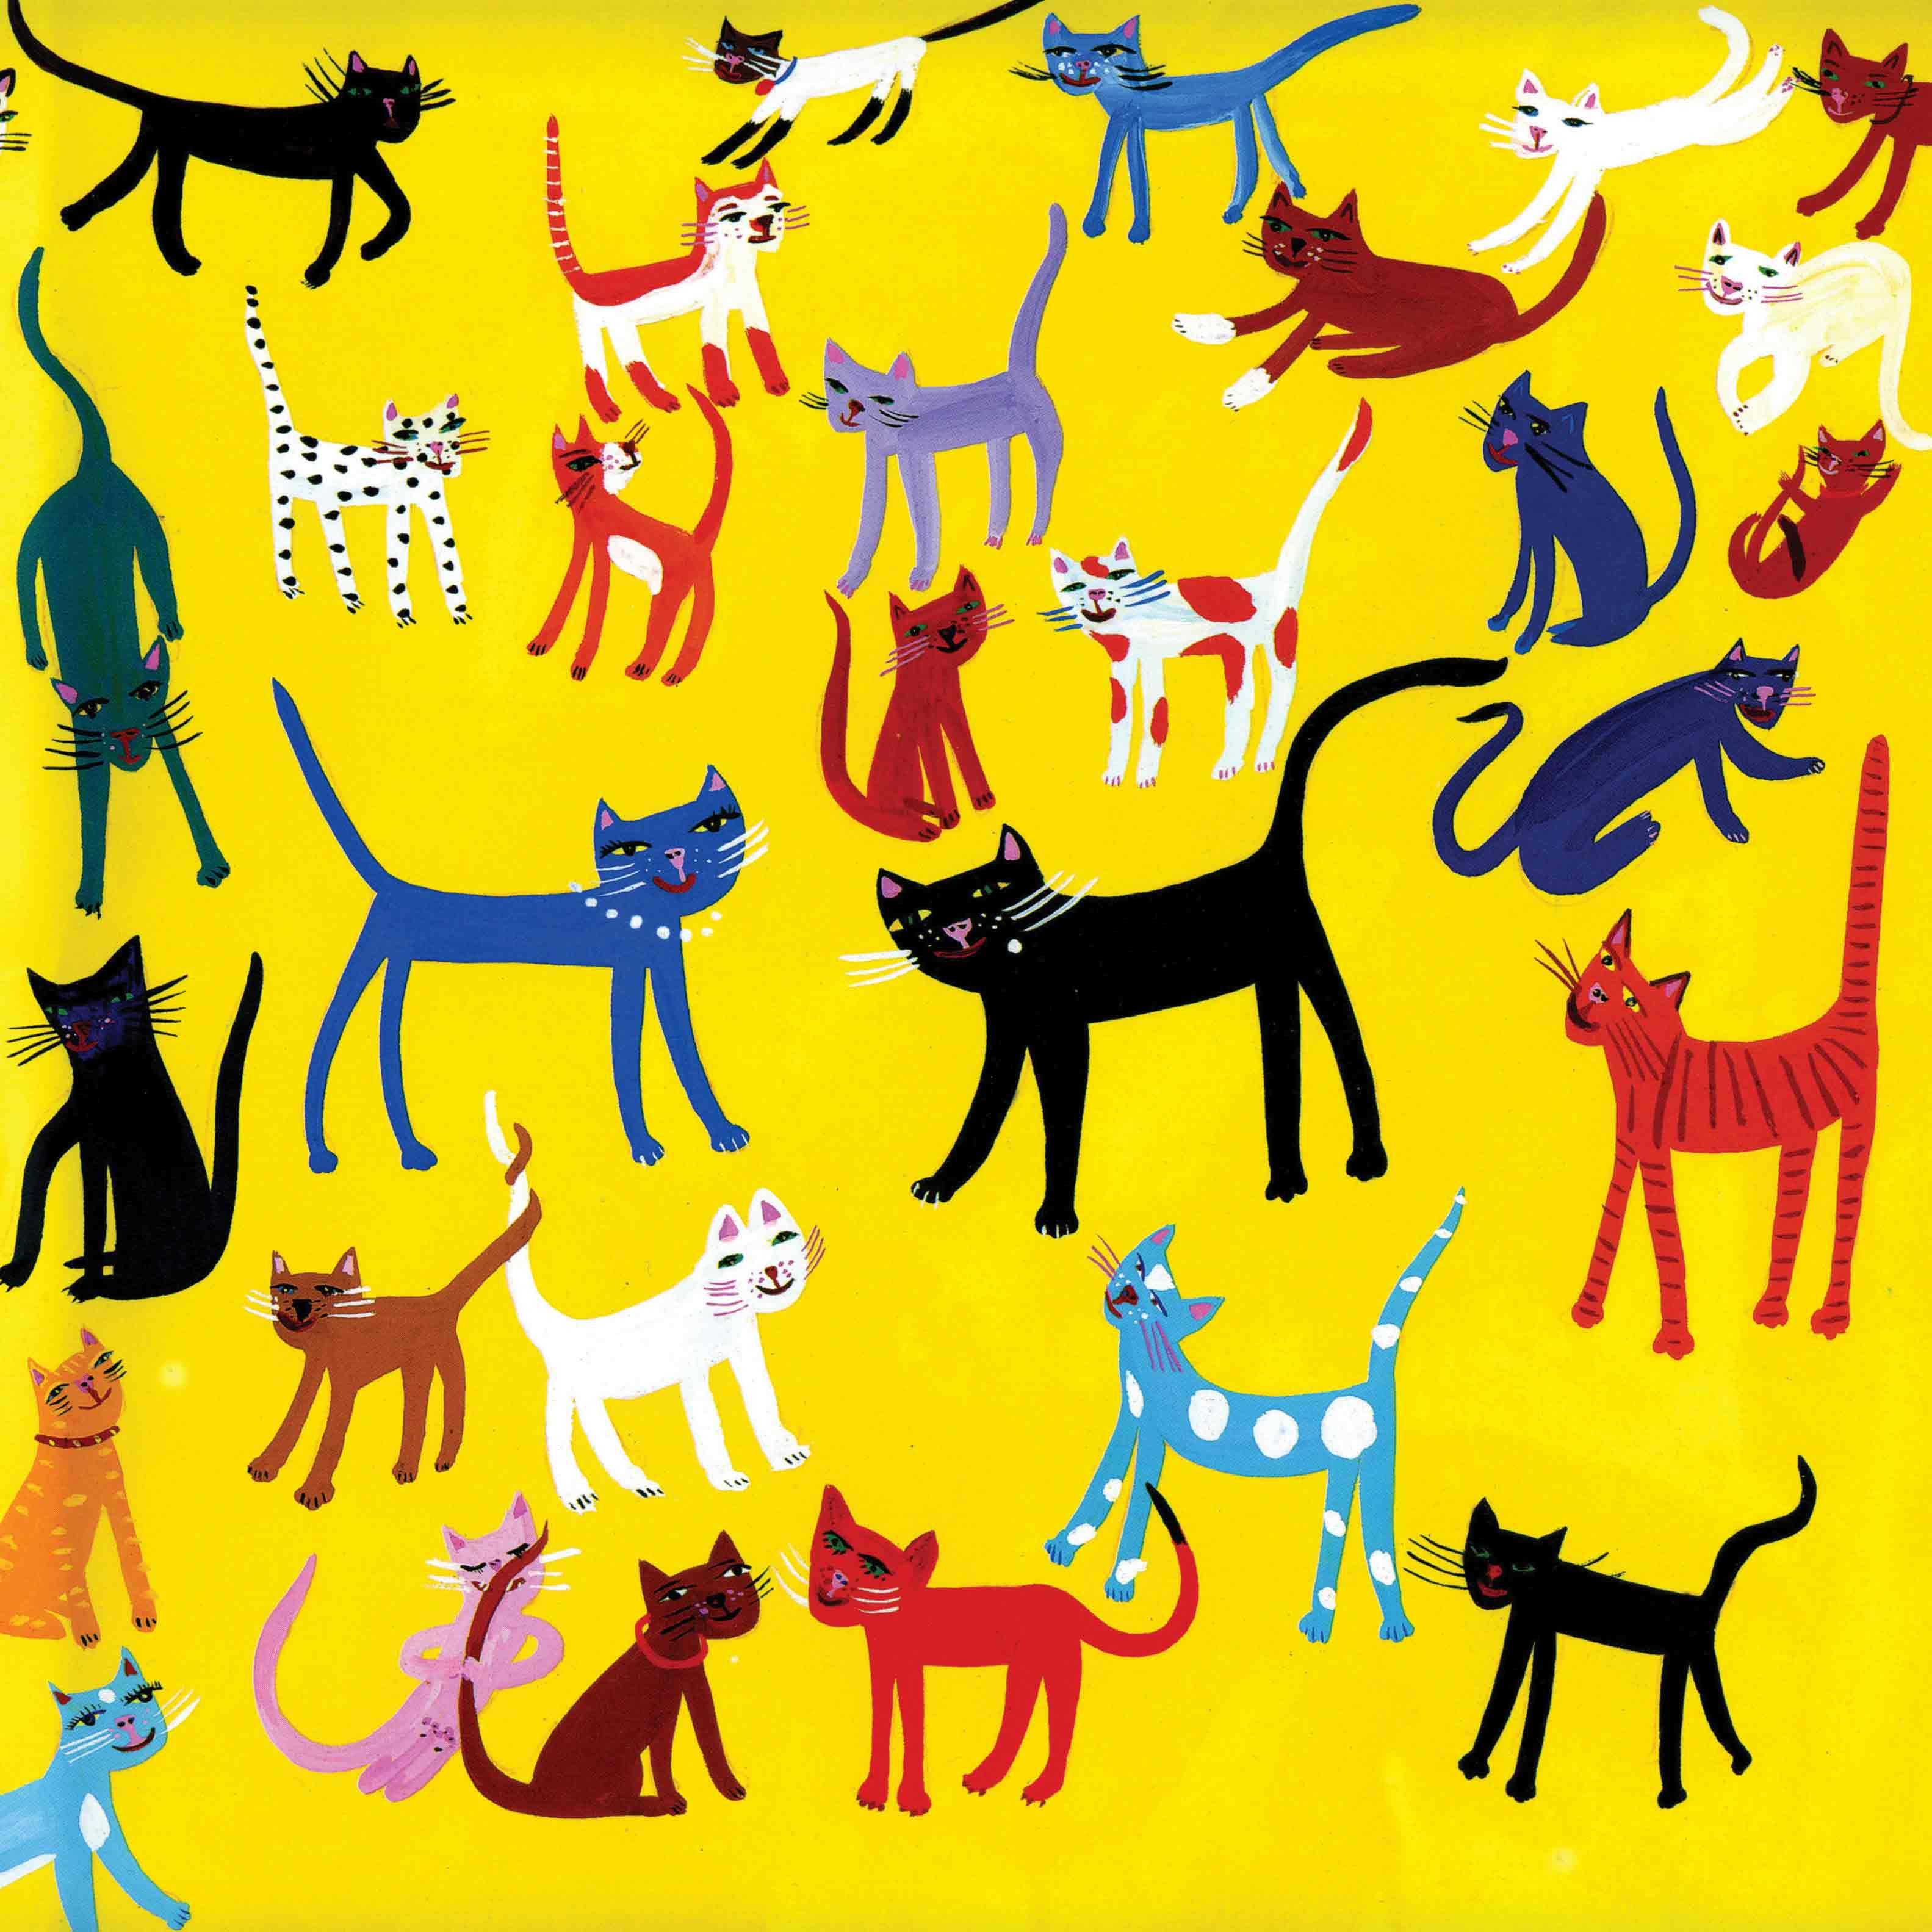 Art Greeting Card by Christopher Corr, Cats, Gouache on Paper, Lots of cats